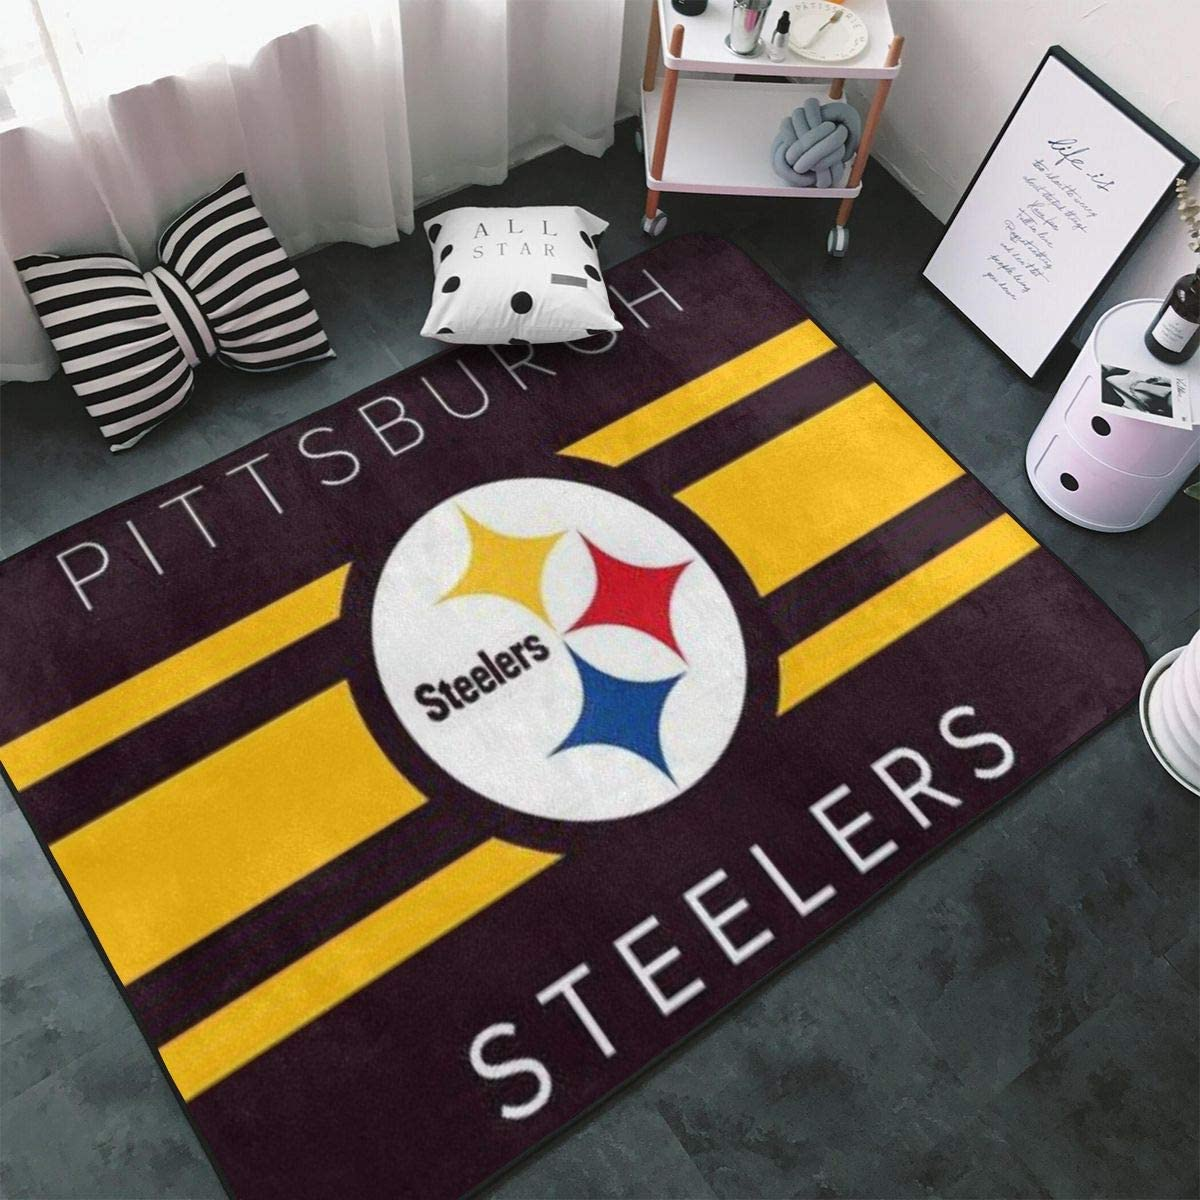 Delean Pittsburgh Steelers Mat Throw Rugs Carpet Indoor Fluffy Area Rugs Home Office Cafe Carpets Suitable